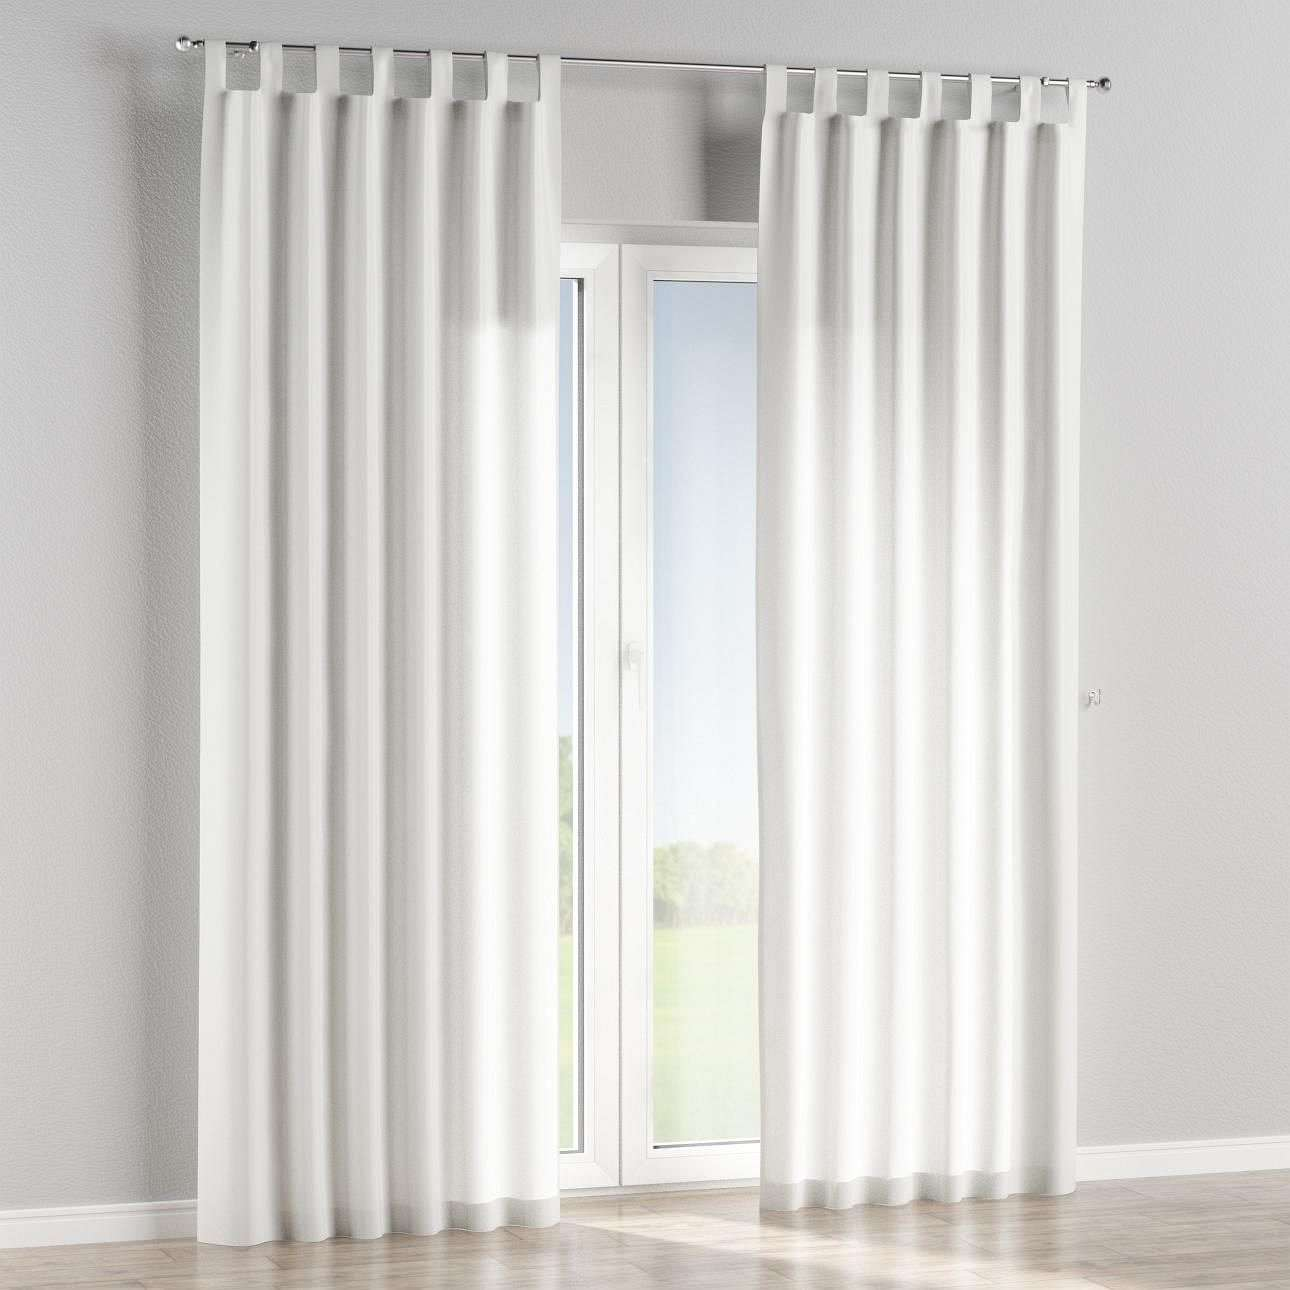 Tab top lined curtains in collection Kids/Baby, fabric: 114-92